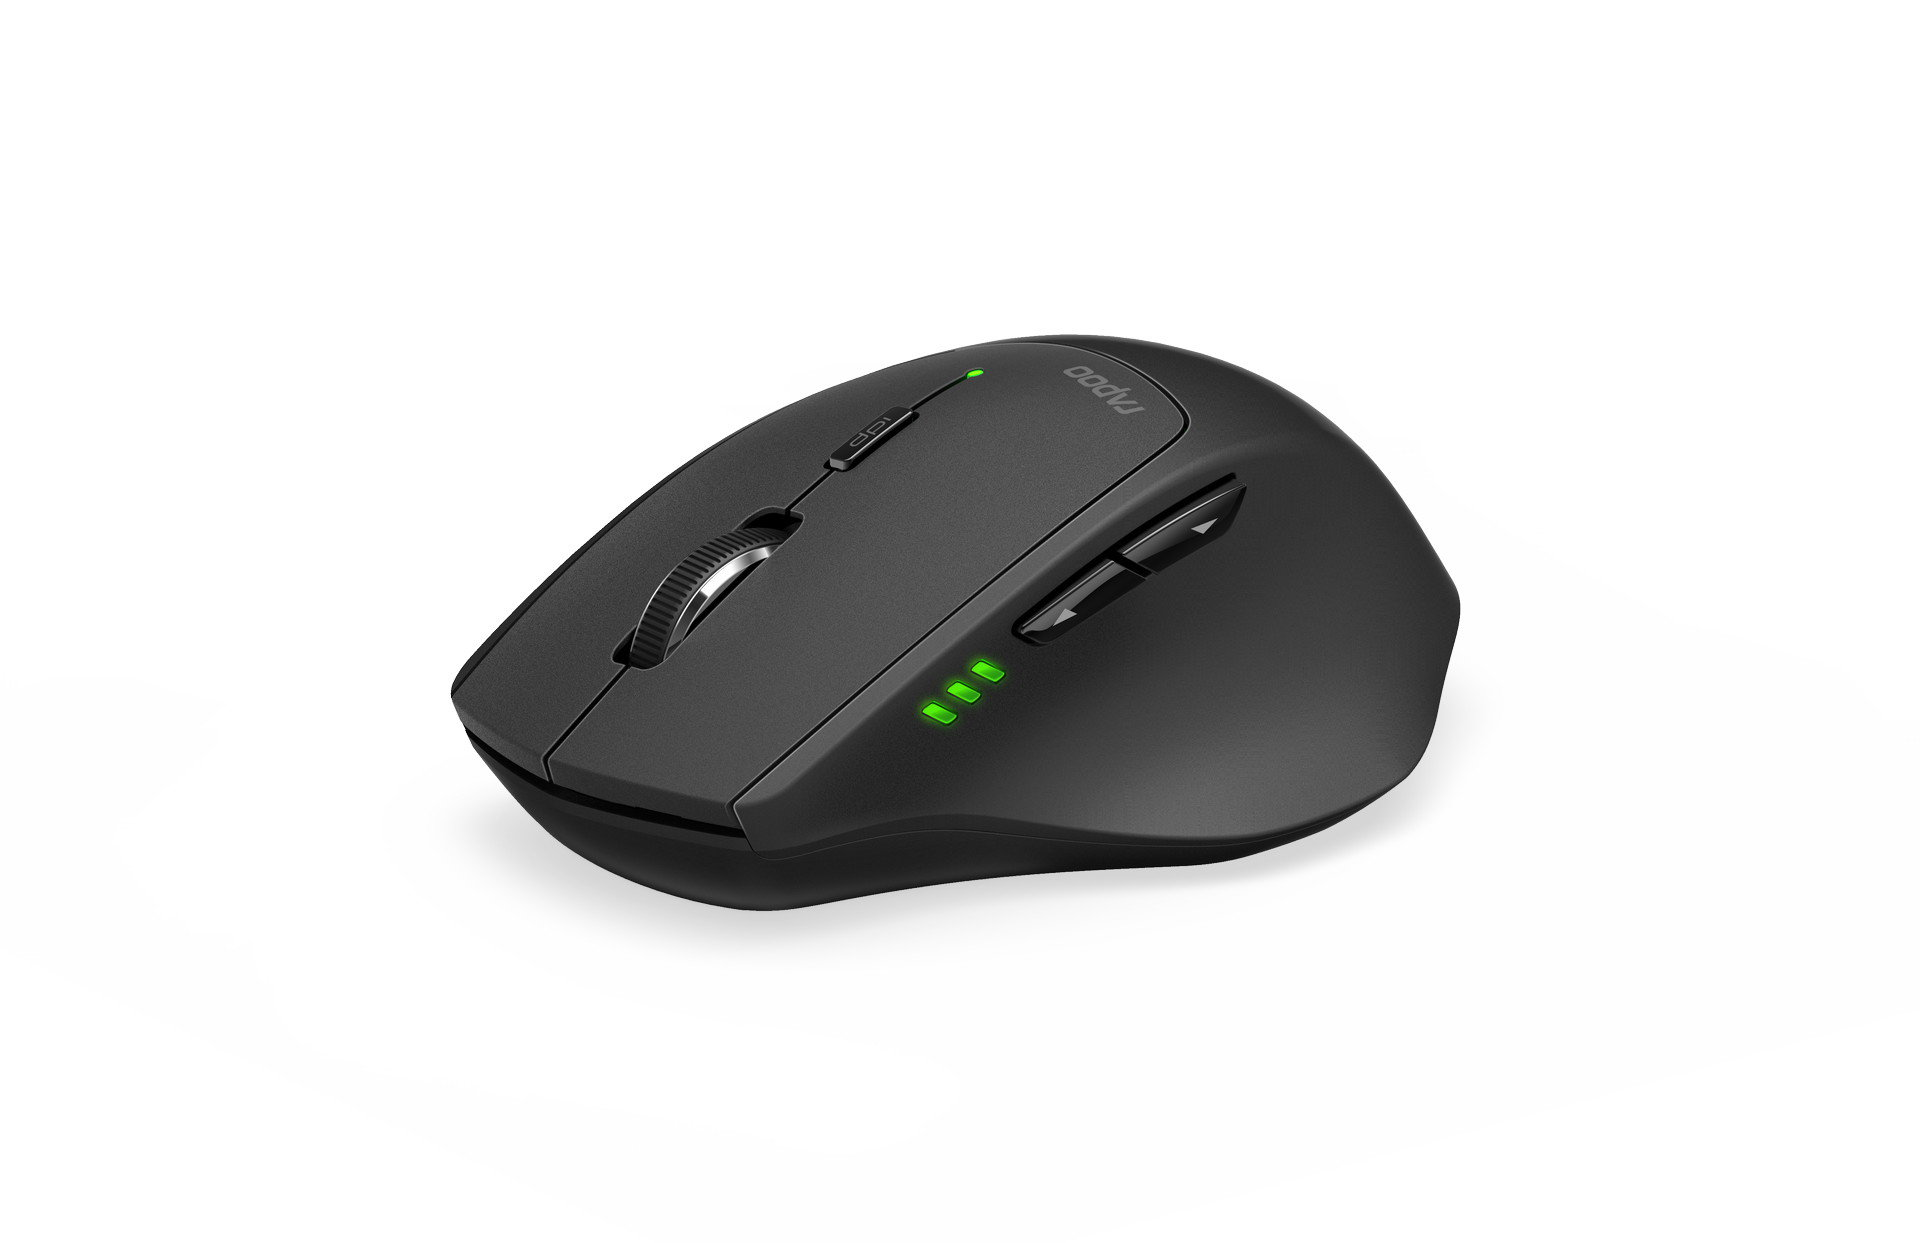 Rapoo MT550 Wireless Laser Mice, Multi-mode: 2.4 GHz, Bluetooth 3.0 & 4.0